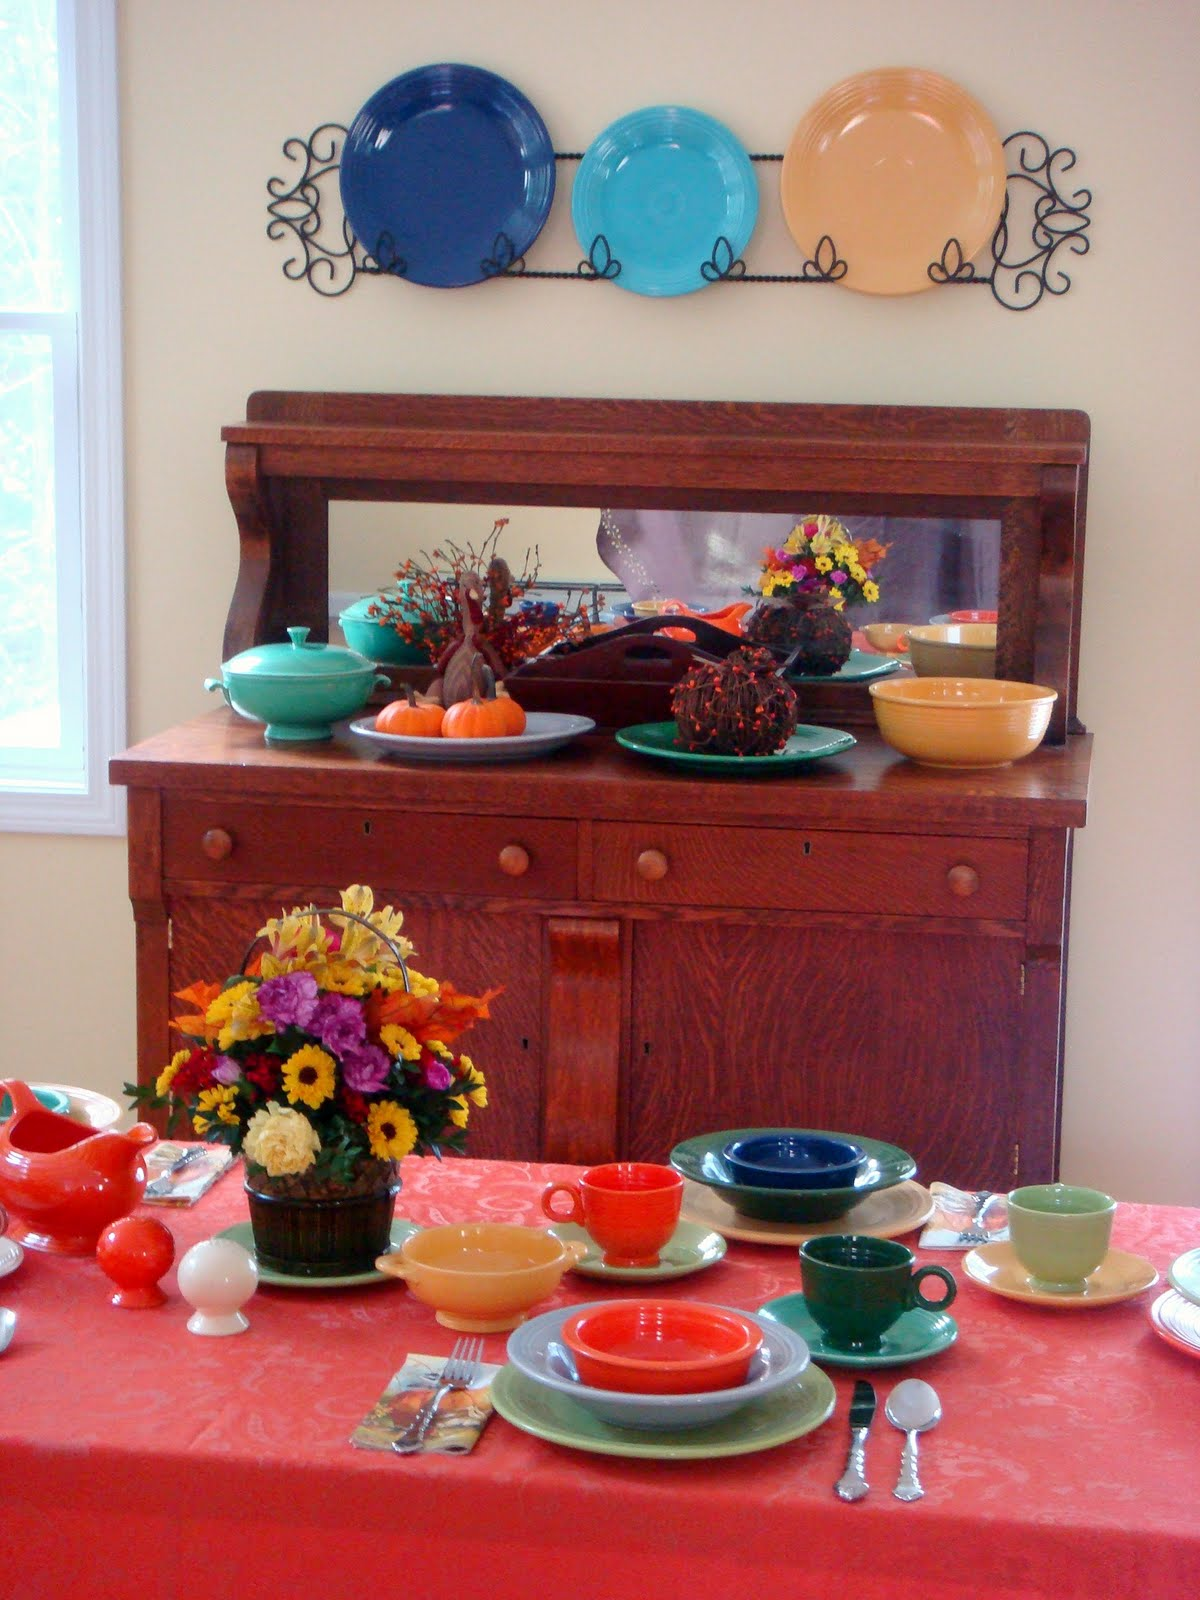 Crafty Woman Fiestaware Thanksgiving Table Setting For Dinner Idesa